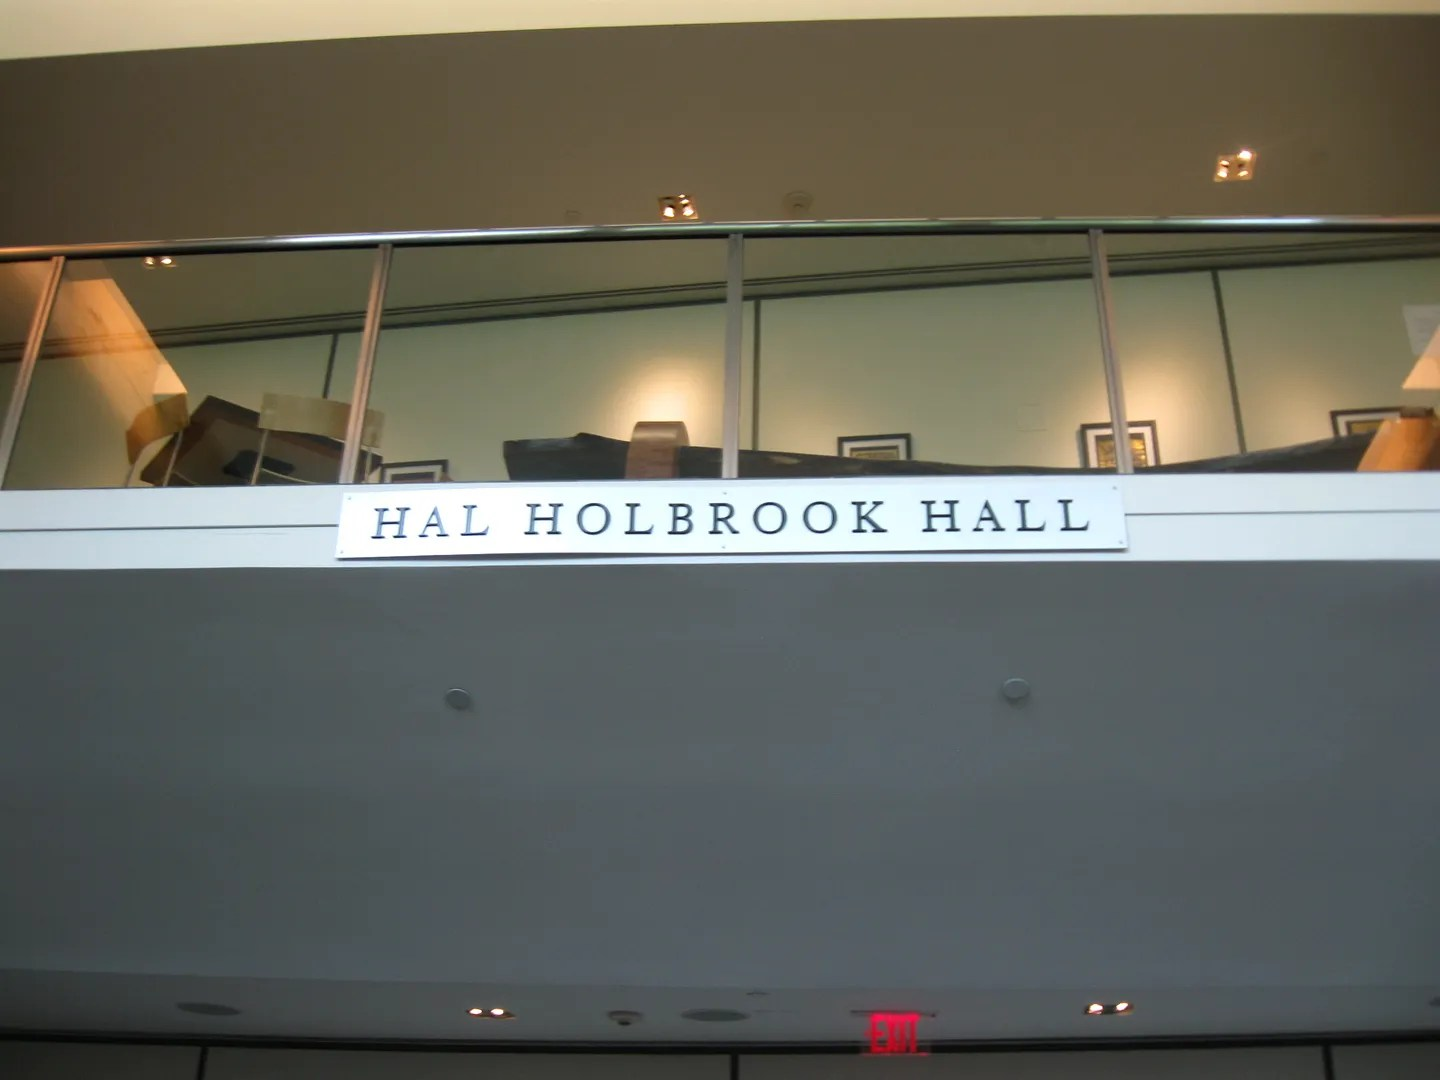 Hal Holbrook Hall, Mark Twain Museum, Hartford